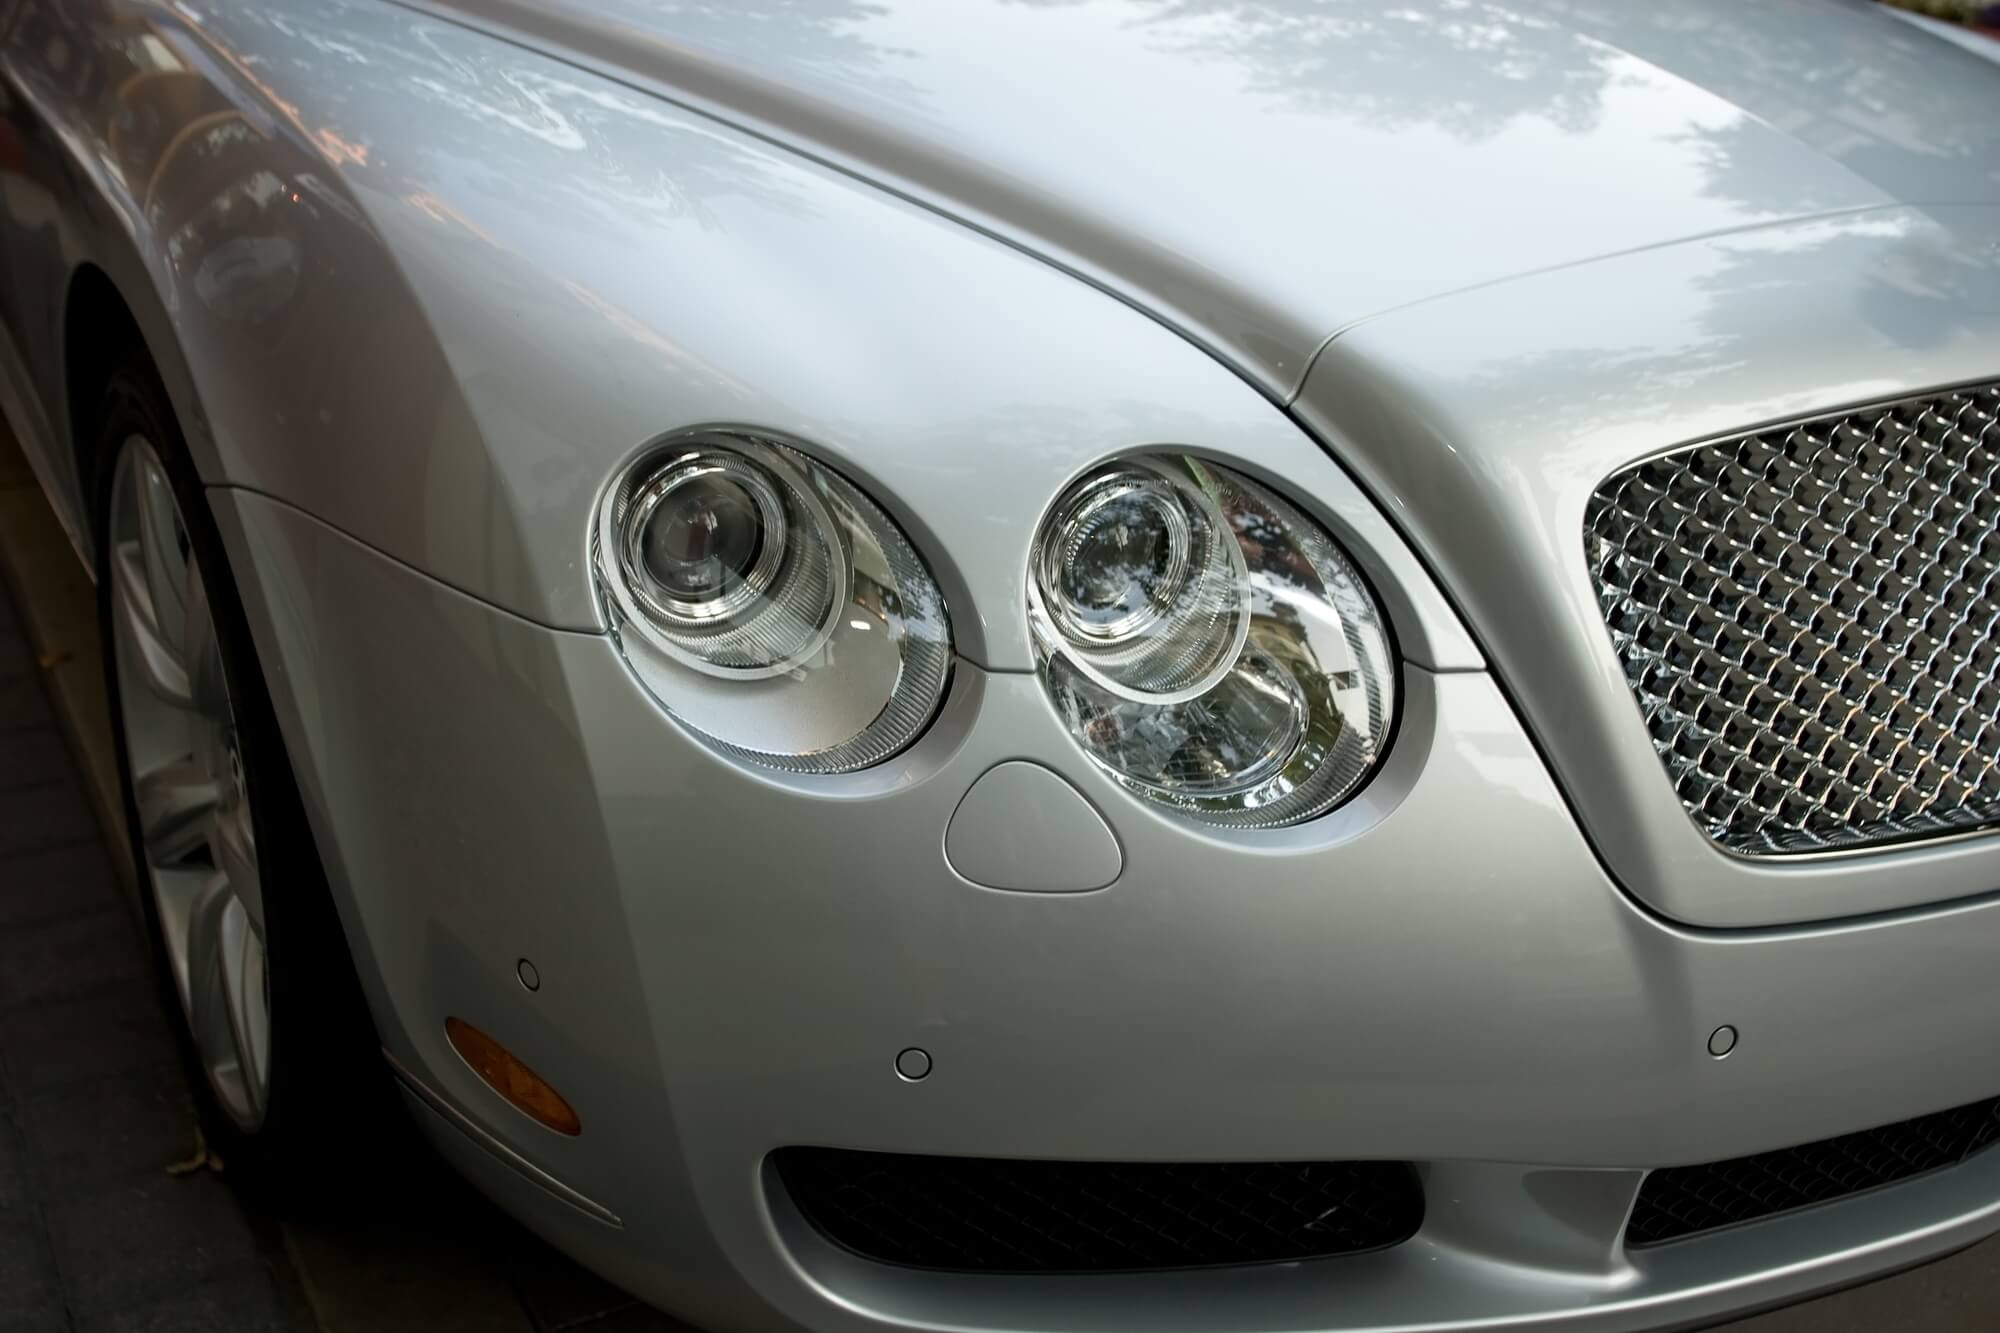 where is the best place to get bentley repair davie fl?